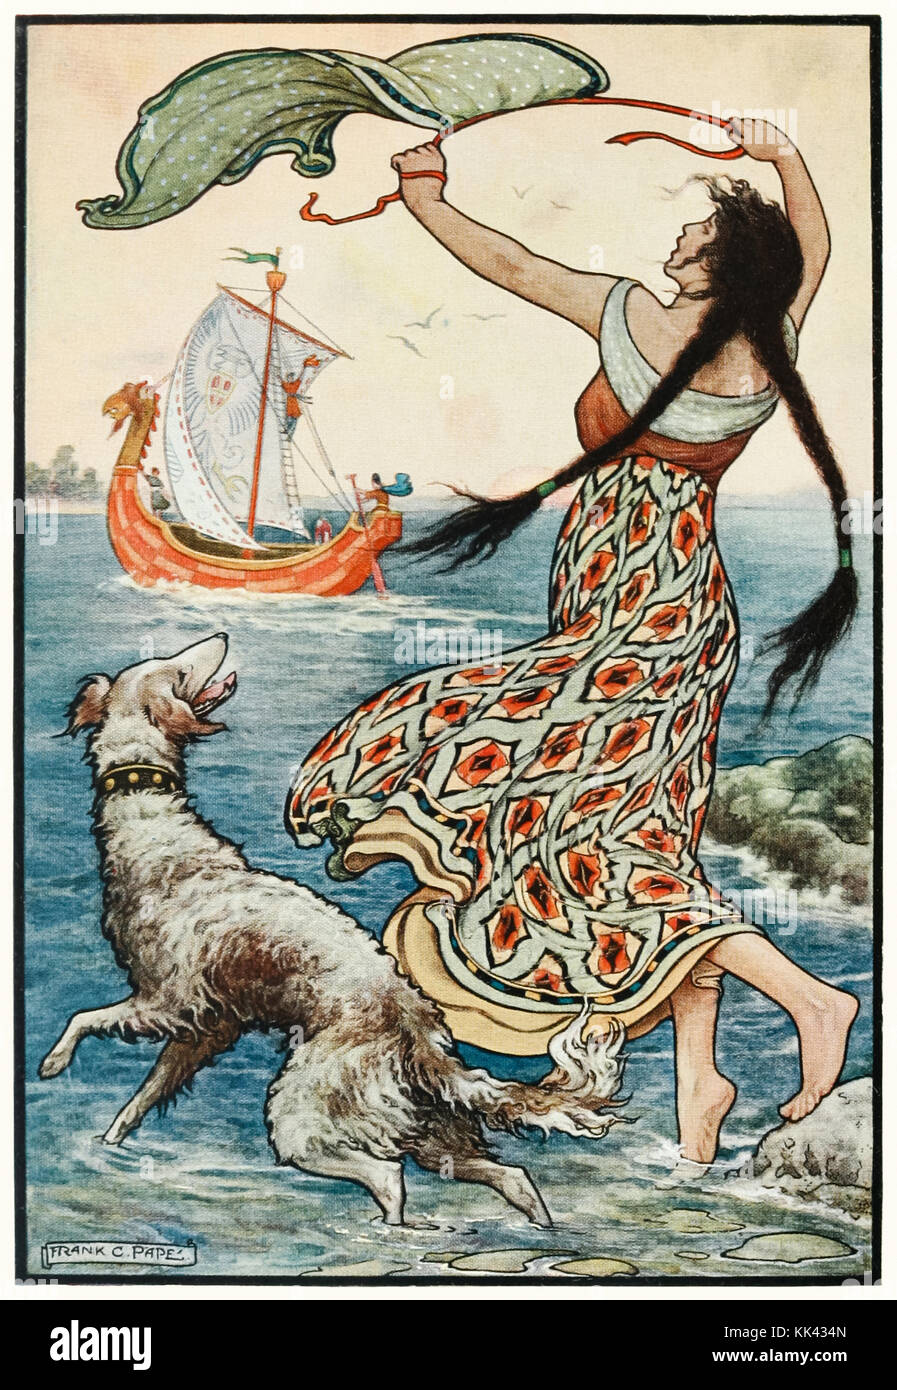 'The black-browed maid stood upon the banks as the red ship… sailed away from Nogorod' from 'The Russian Story Book' - Stock Image